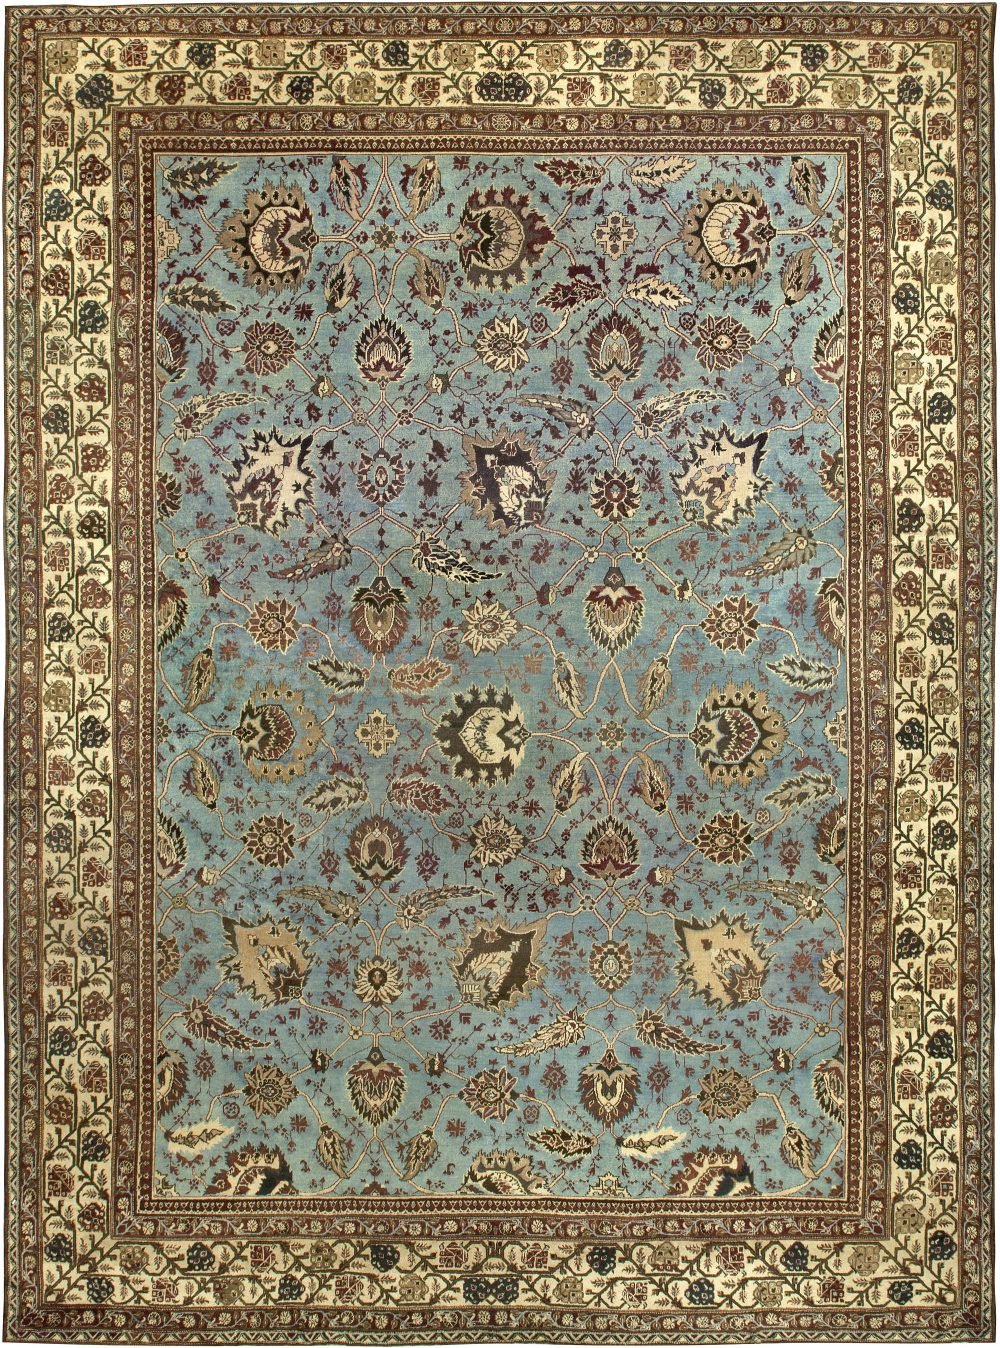 Large Antique Indian Amritsar Light Blue and Beige Handwoven Rug BB6792